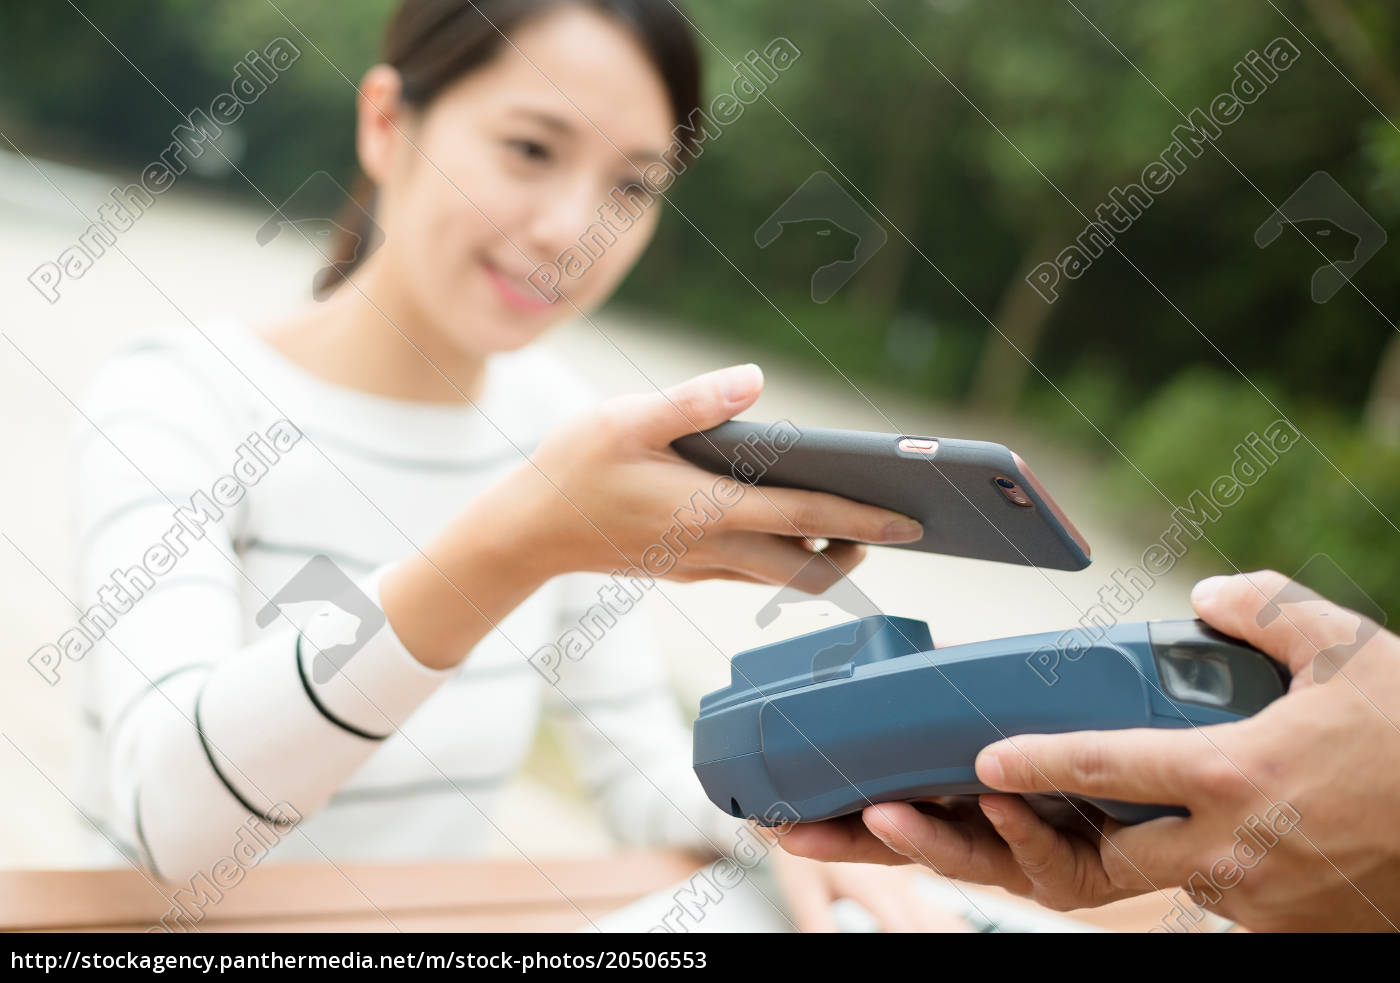 customer, paying, with, nfc, technology - 20506553